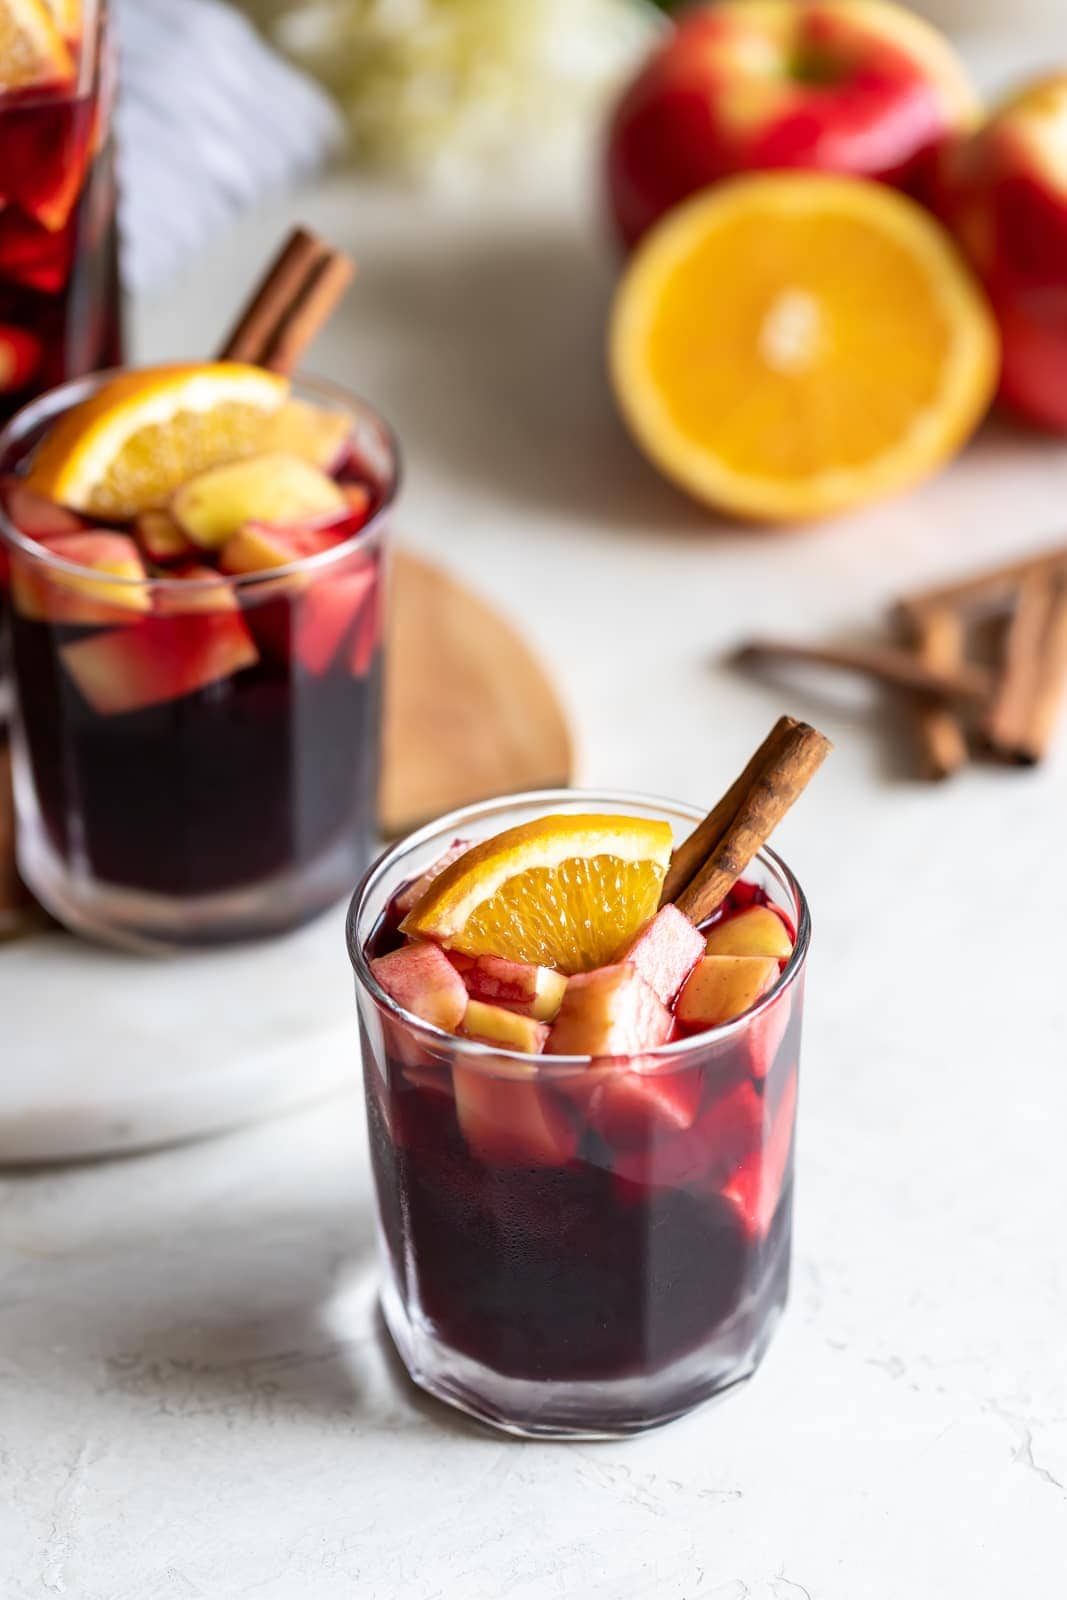 A deliciously fall-flavored red wine sangria made with pears, apples, sliced oranges and warm spices like cinnamon, ginger, and cardamom.